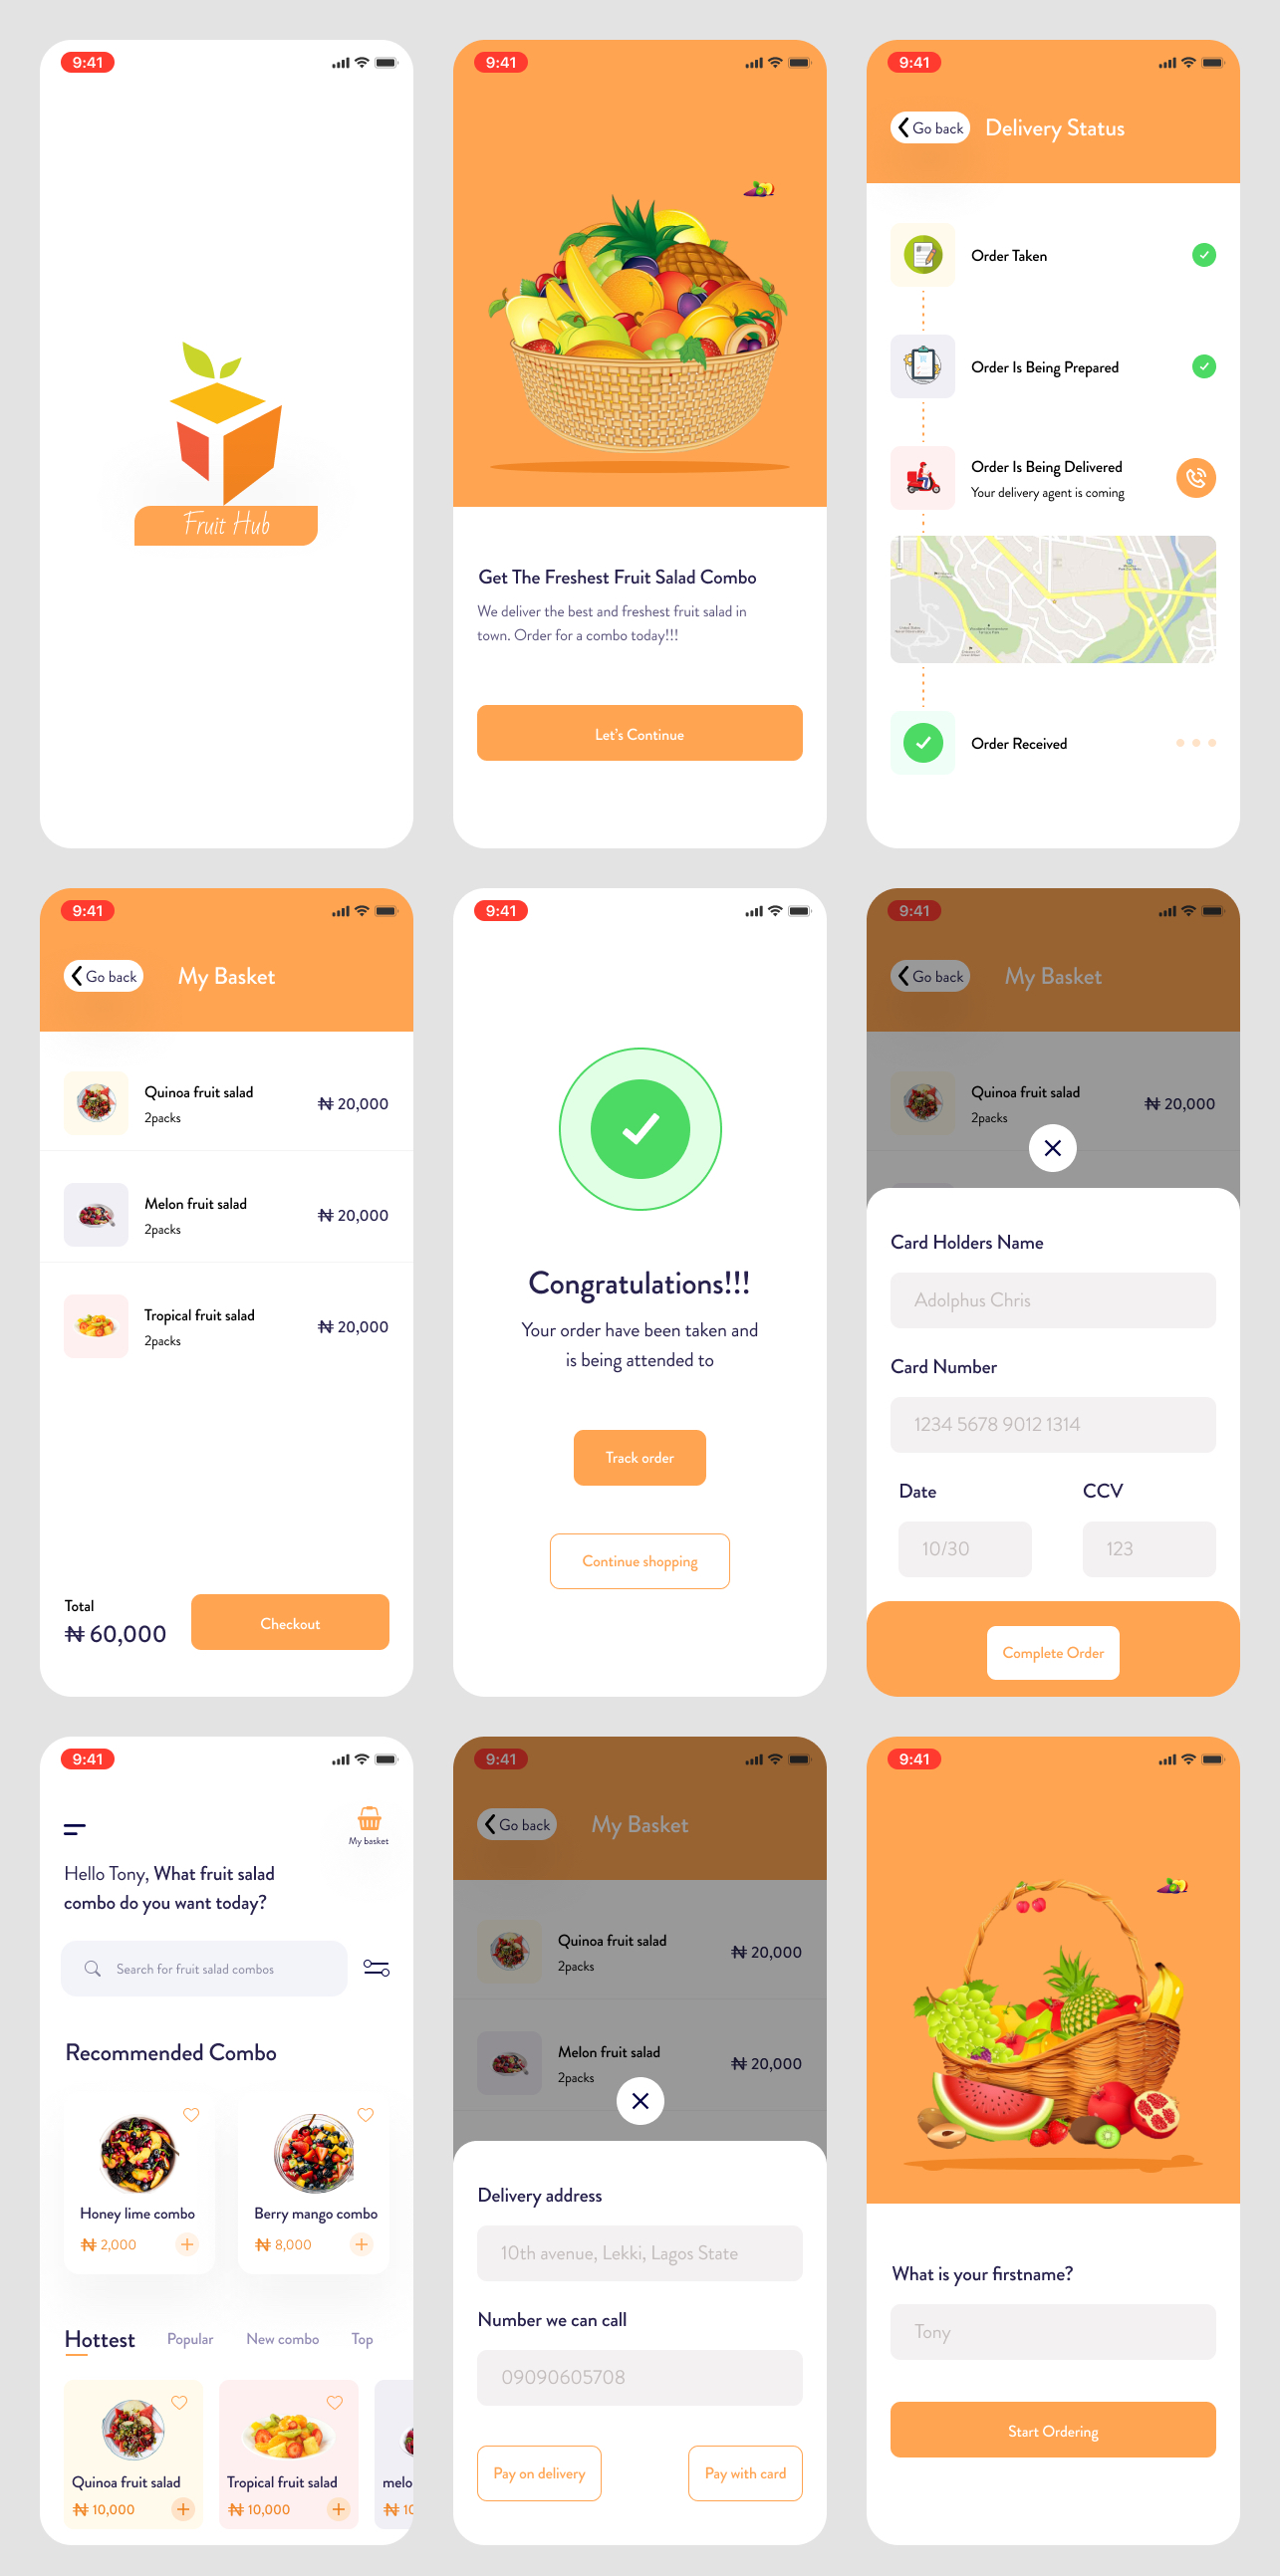 Ecommerce Mobile Free UI Kit - Speed up your design, prototyping workflow and create a beautiful app with this Figma's fully customizable and fully prototyped UI Kit.